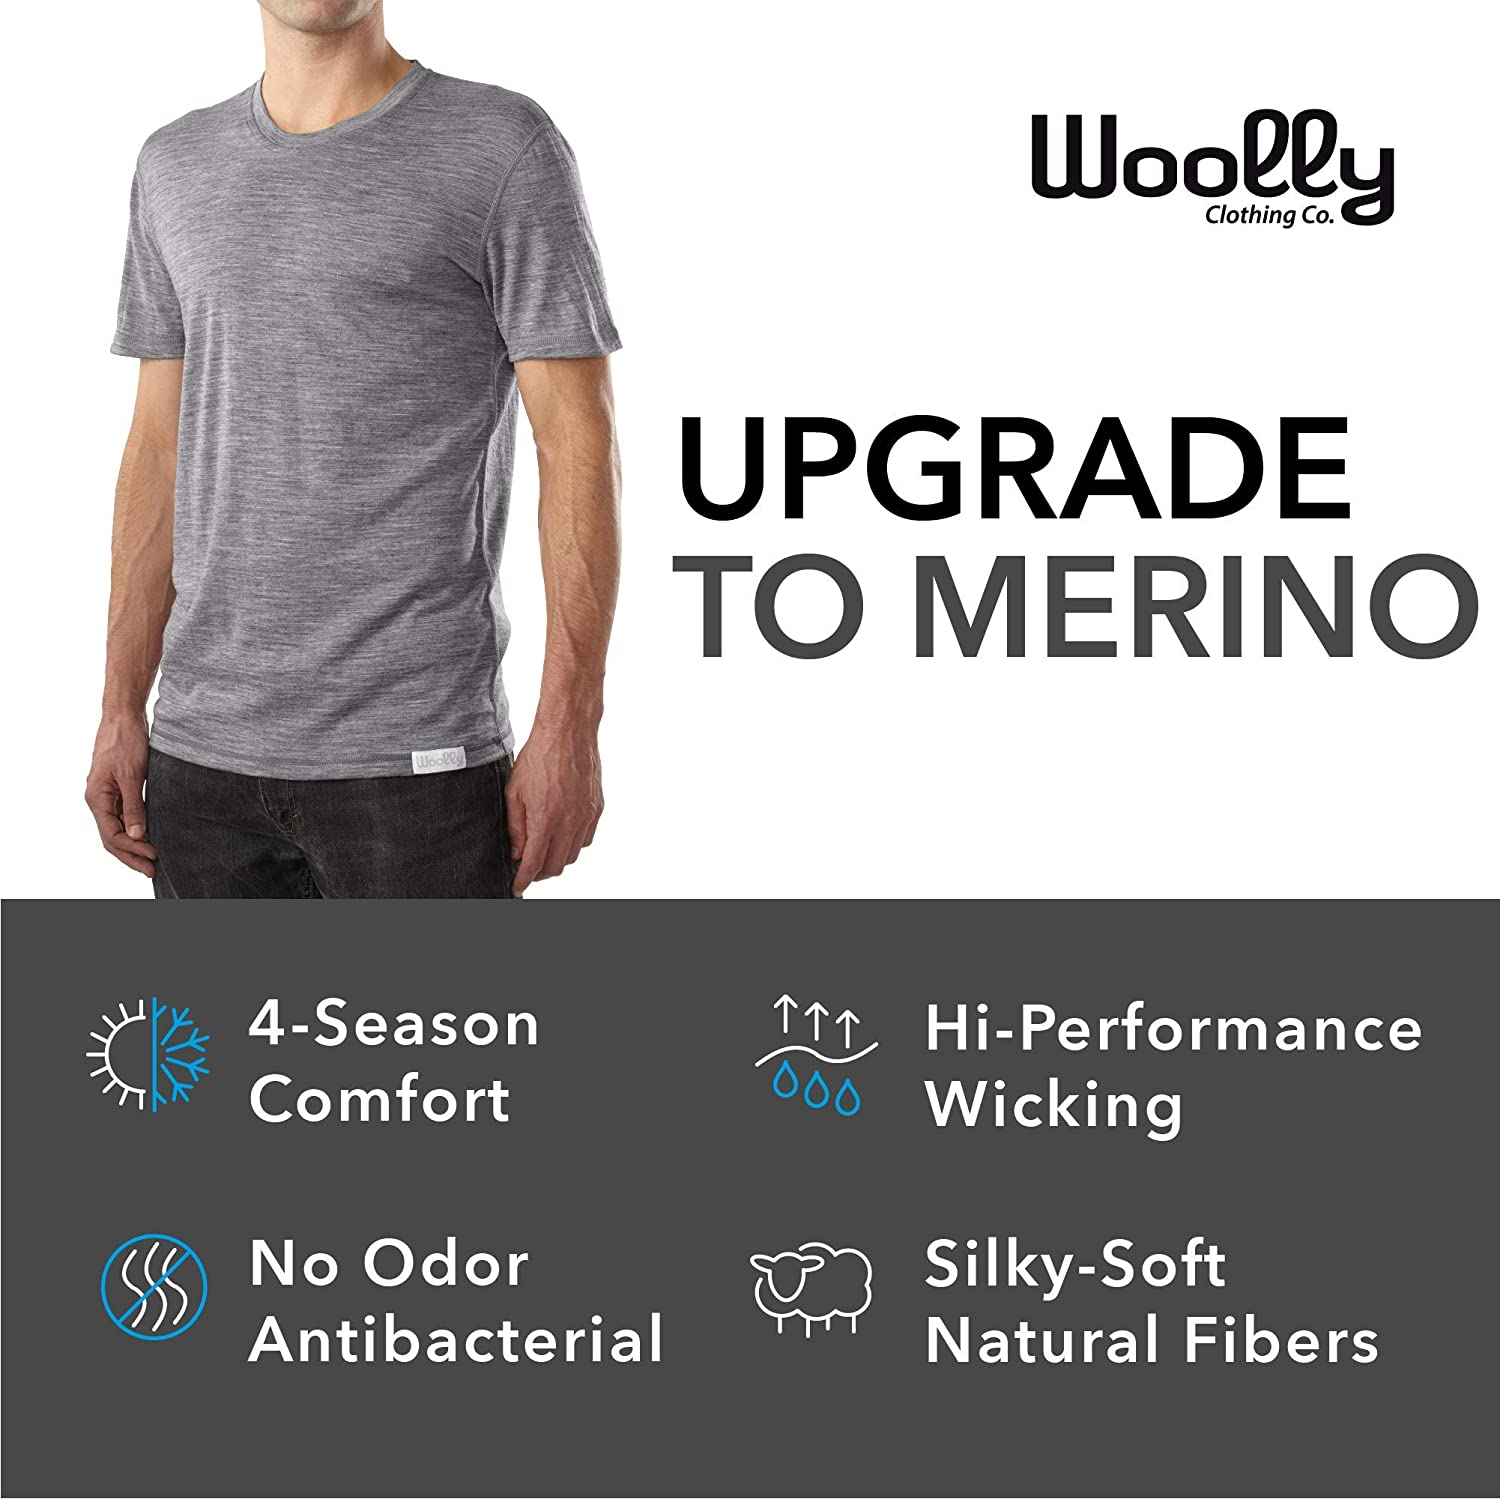 60f84fcc674 Amazon.com: Woolly Clothing Men's Merino Wool Crew Neck Tee Shirt -  Everyday Weight - Wicking Breathable Anti-Odor: Clothing